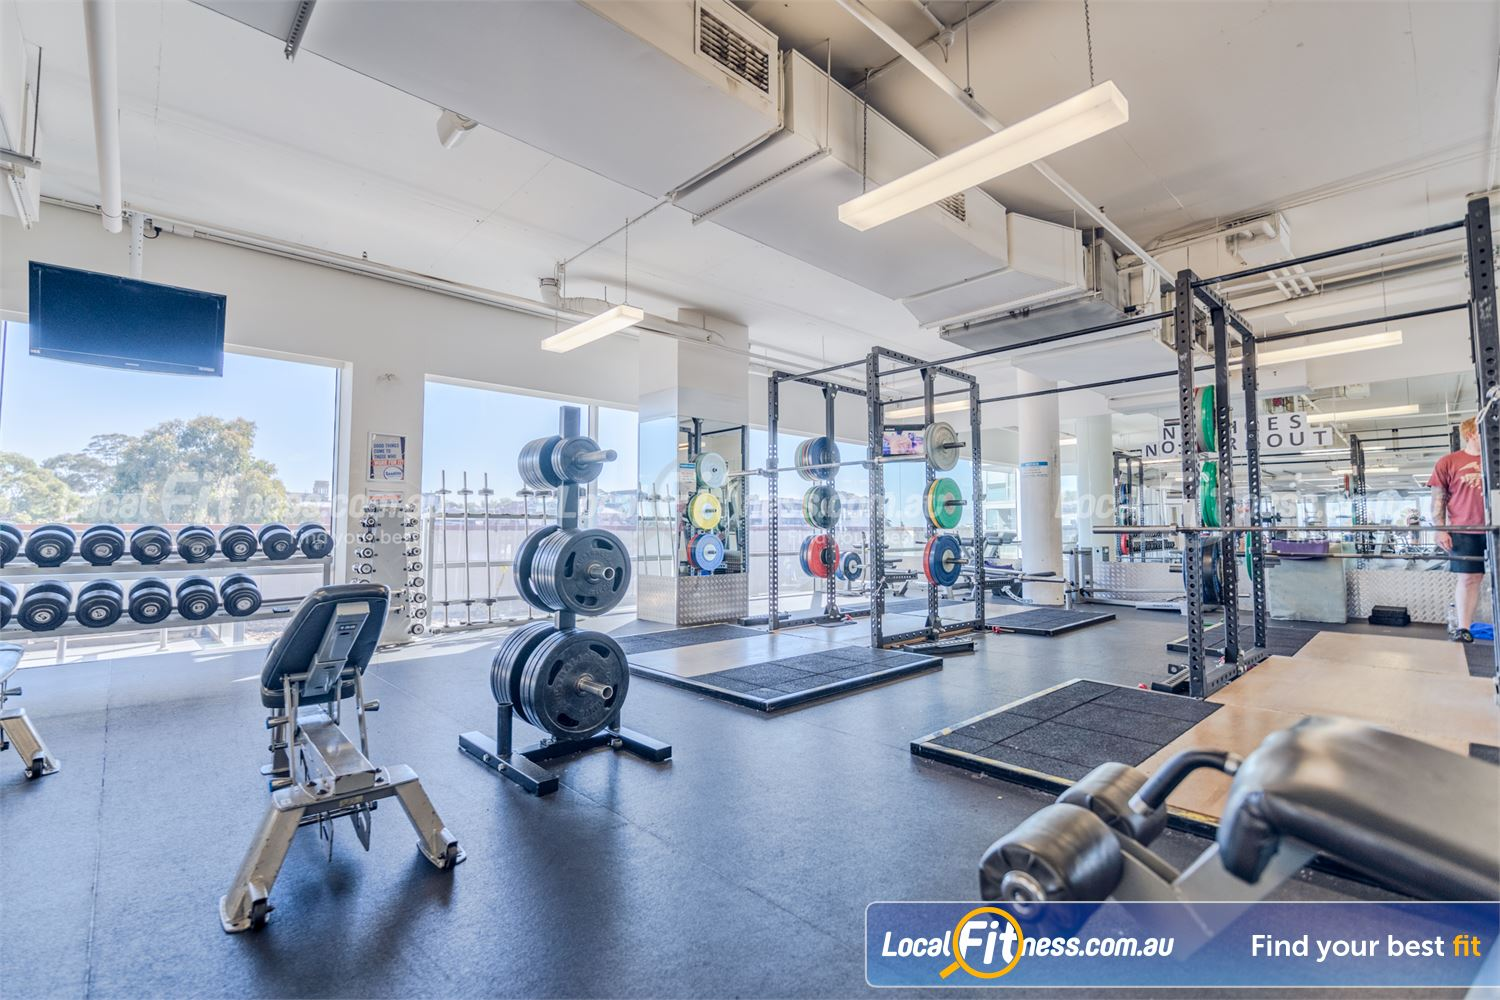 Goodlife Health Clubs Camberwell Our Camberwell gym is fully equipped for strength training.